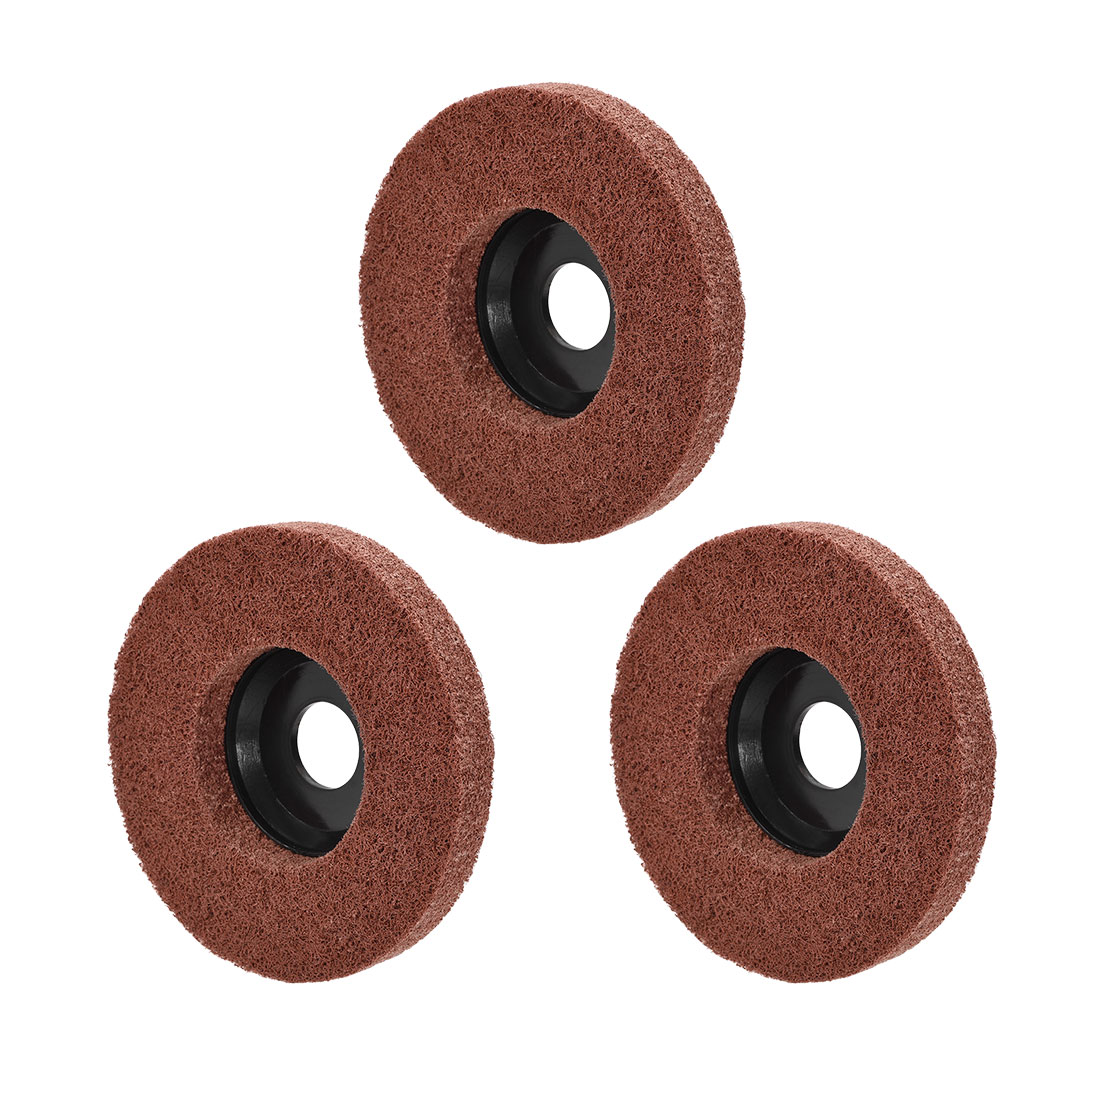 4.5 Inch Polishing Wheel Buffing Pad Felt Disc for 100 Angle Grinders Black 3pcs